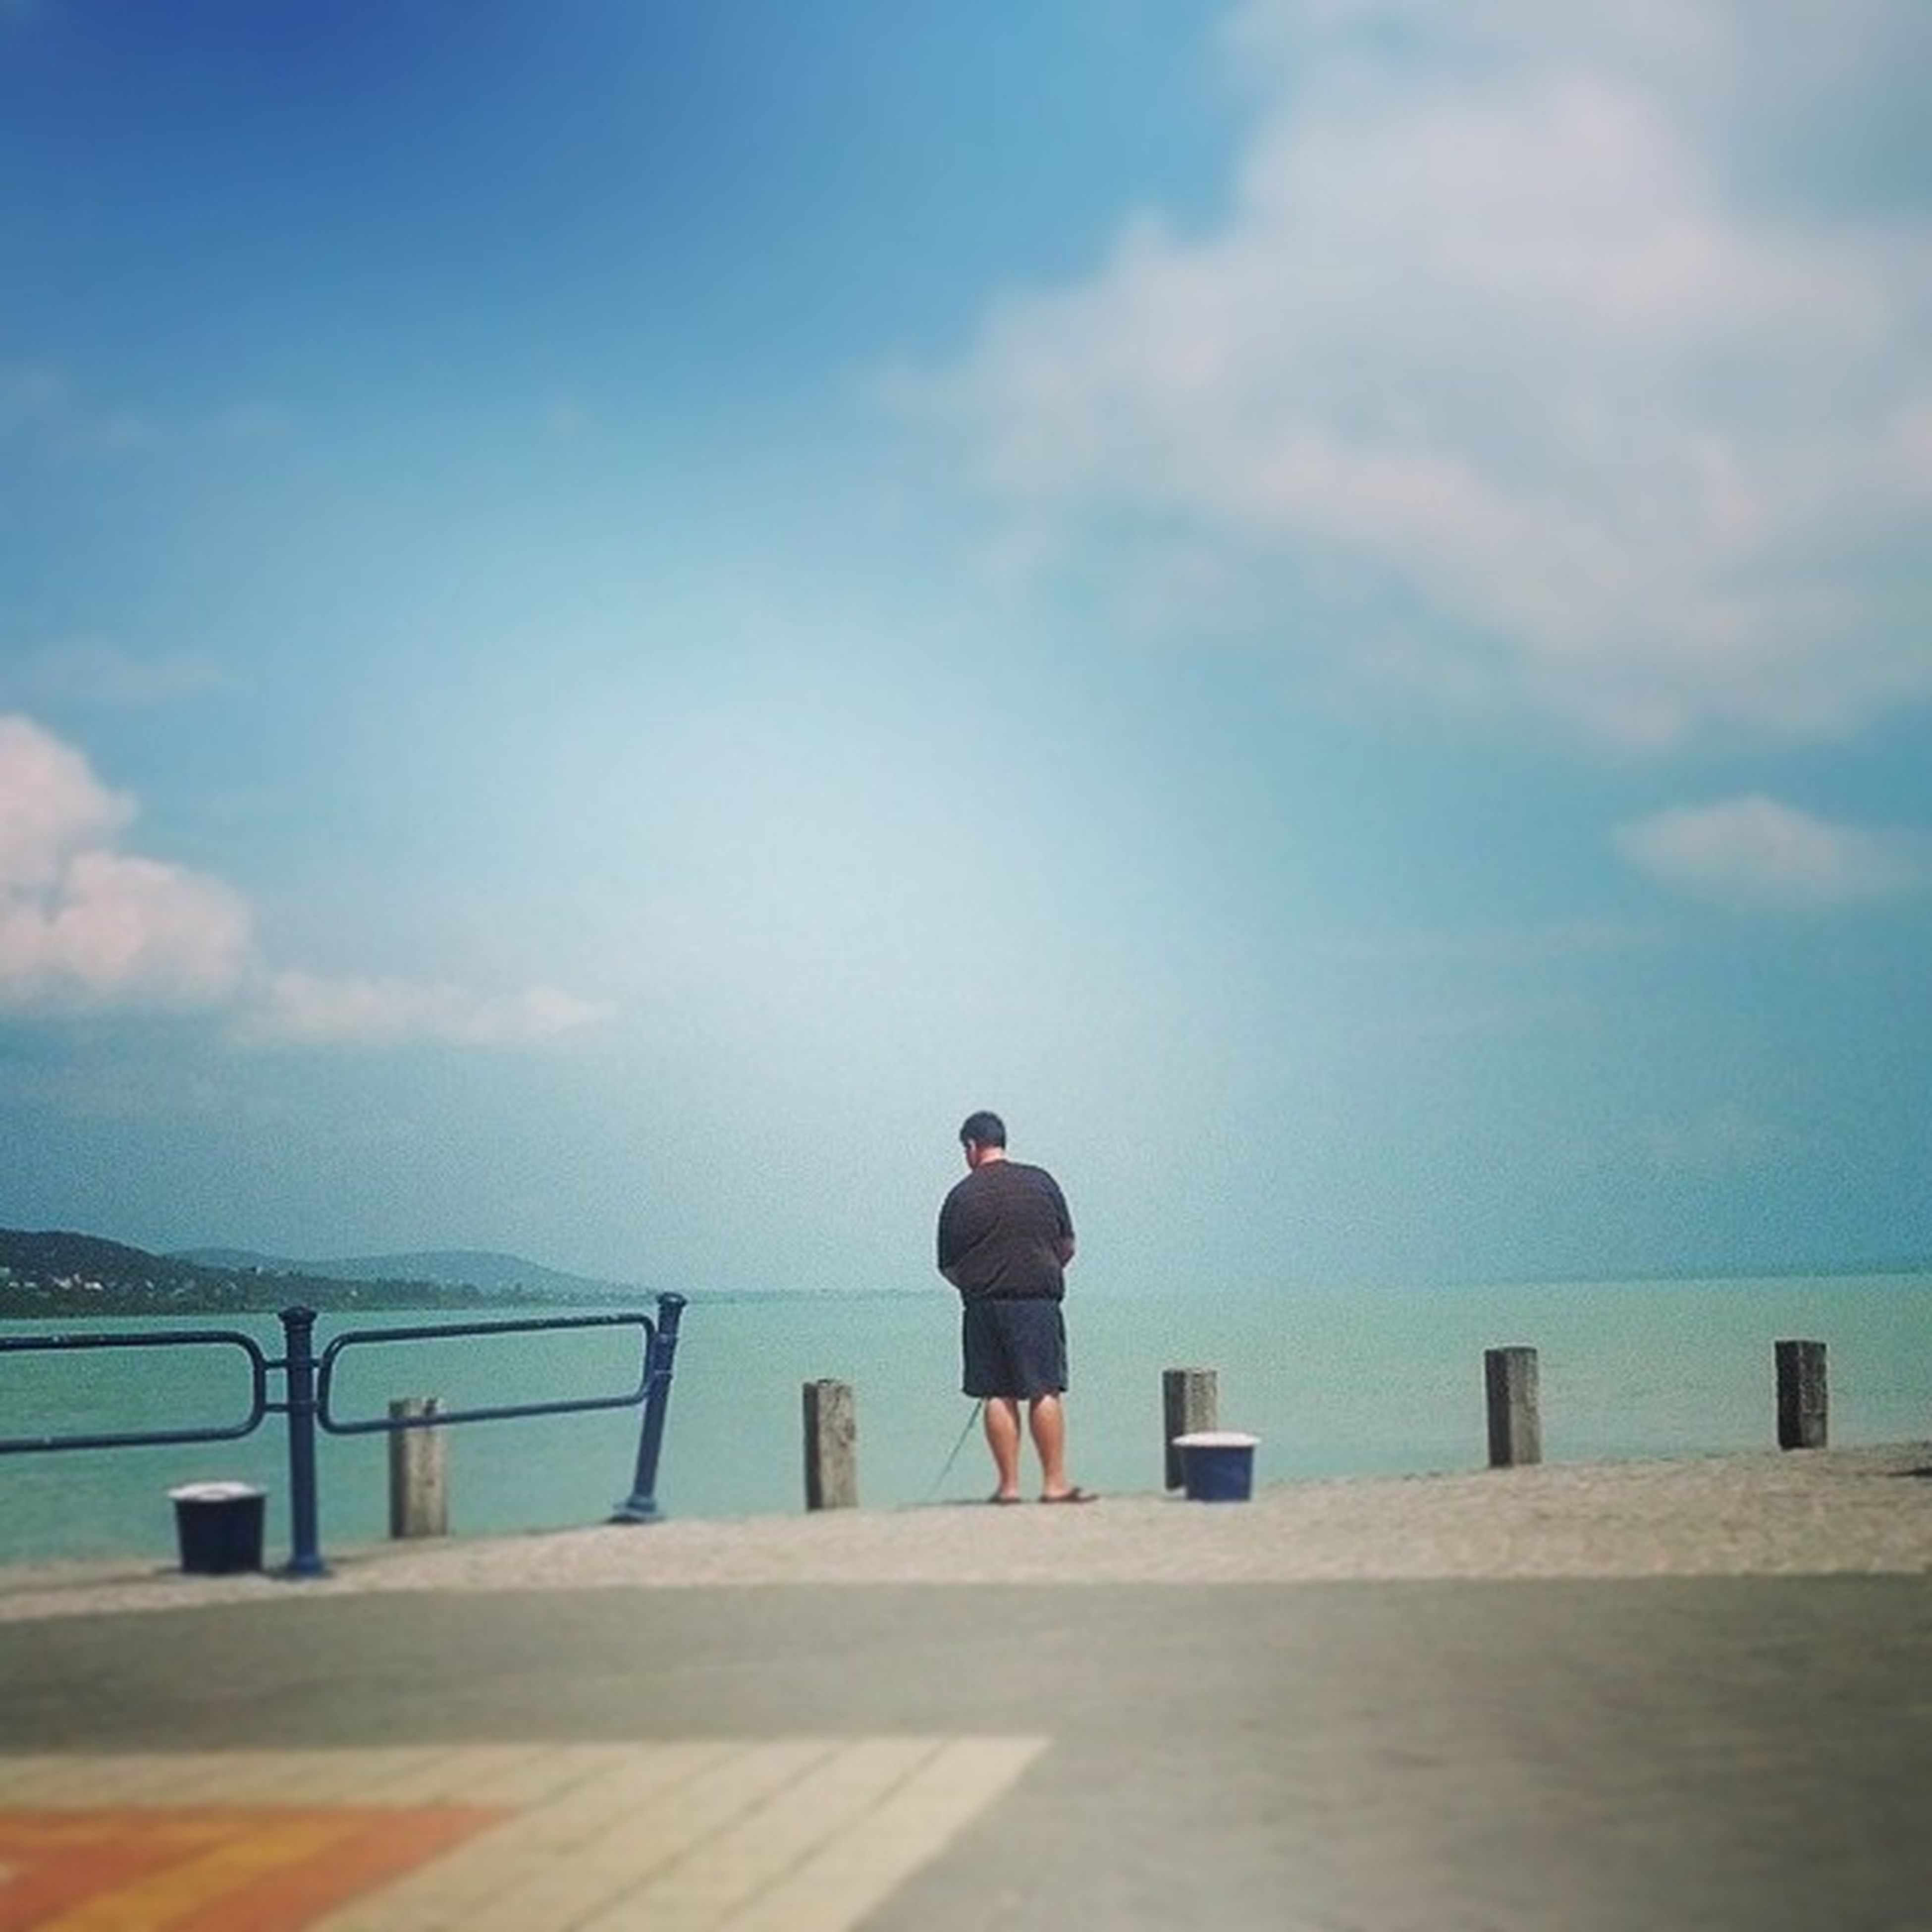 rear view, sky, water, railing, full length, standing, sea, cloud - sky, pier, lifestyles, leisure activity, tranquility, tranquil scene, looking at view, men, scenics, cloud, blue